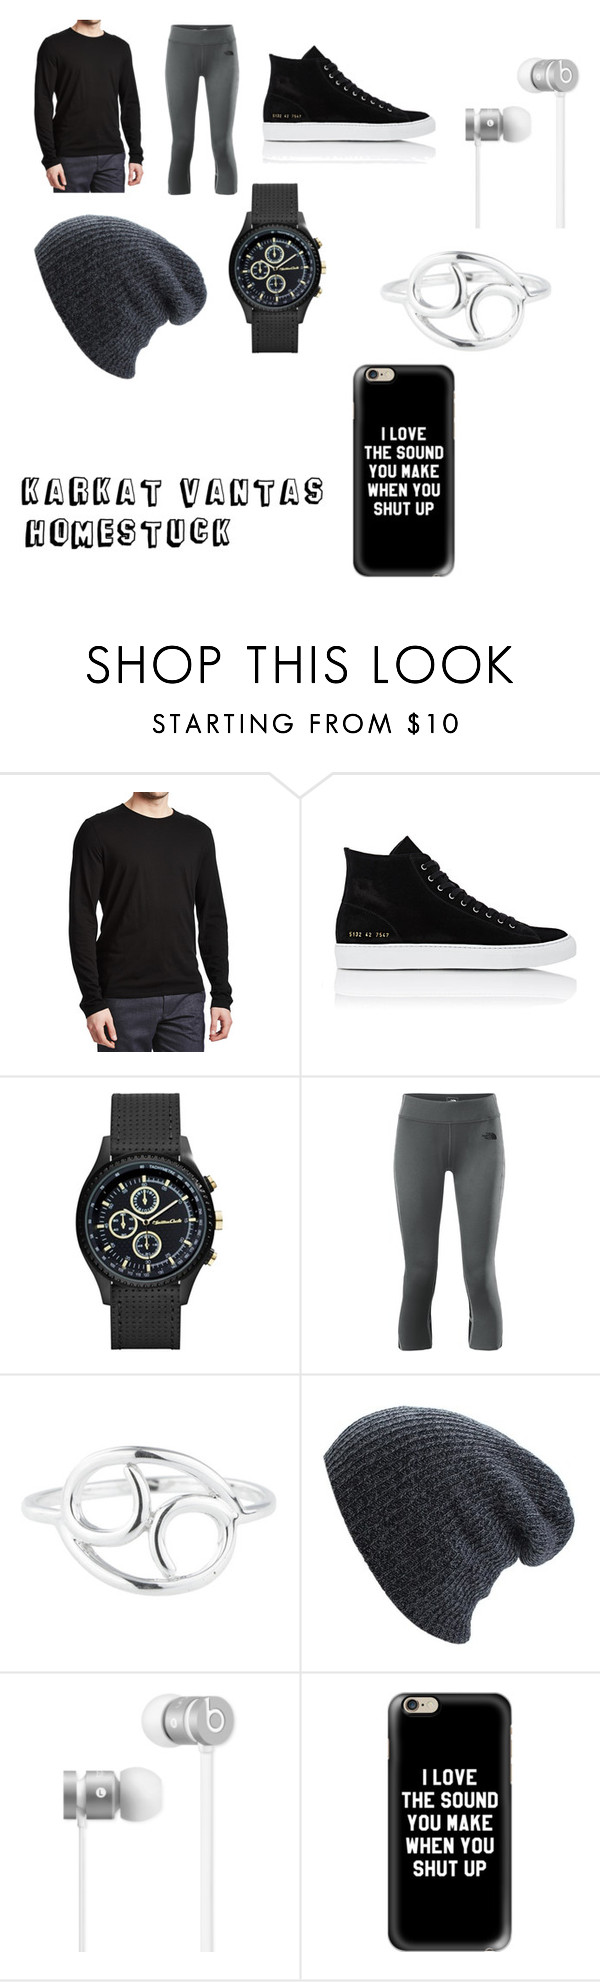 """""""Karkat Vantas"""" by radioactivegreenyt on Polyvore featuring Common Projects, The North Face, Rock 'N Rose, Beats by Dr. Dre and Casetify"""